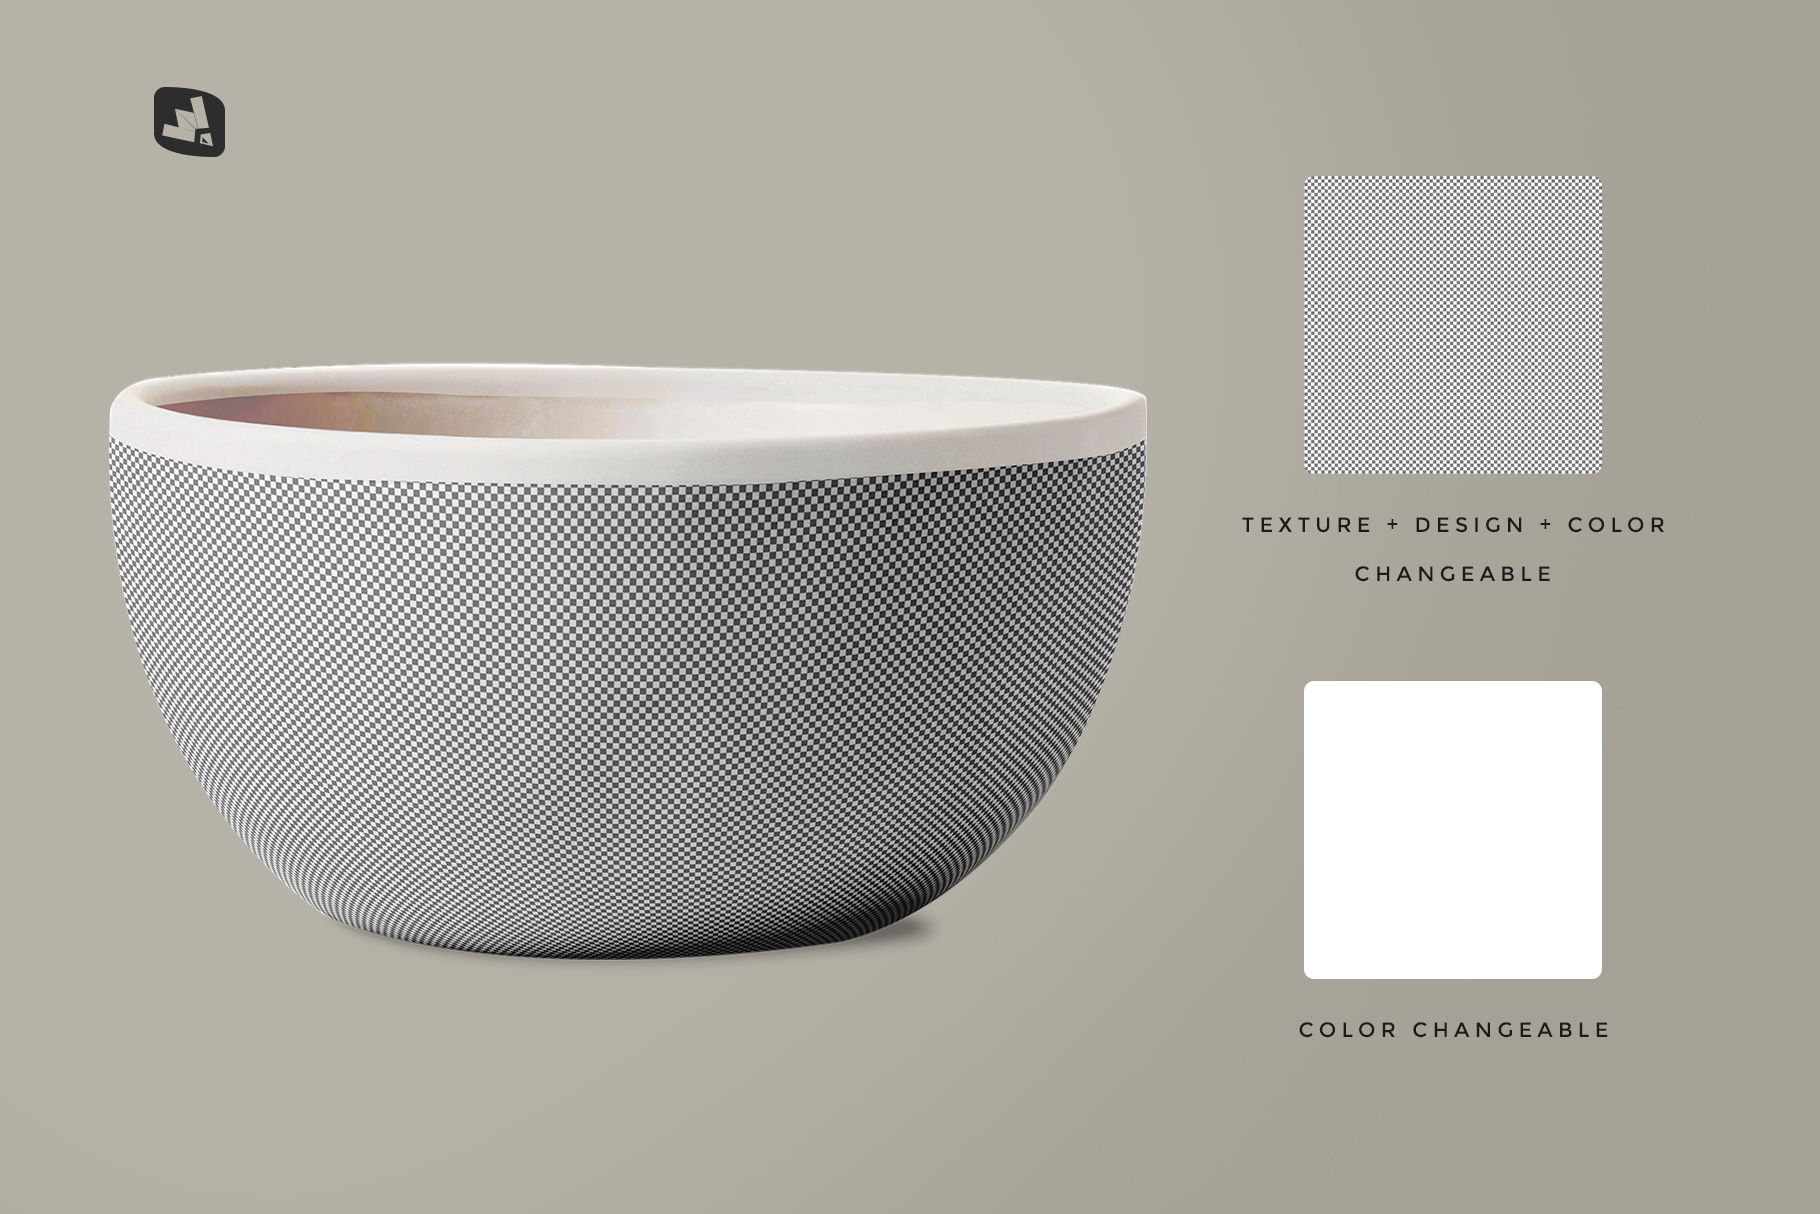 editability of the front view bowl mockup vol.1